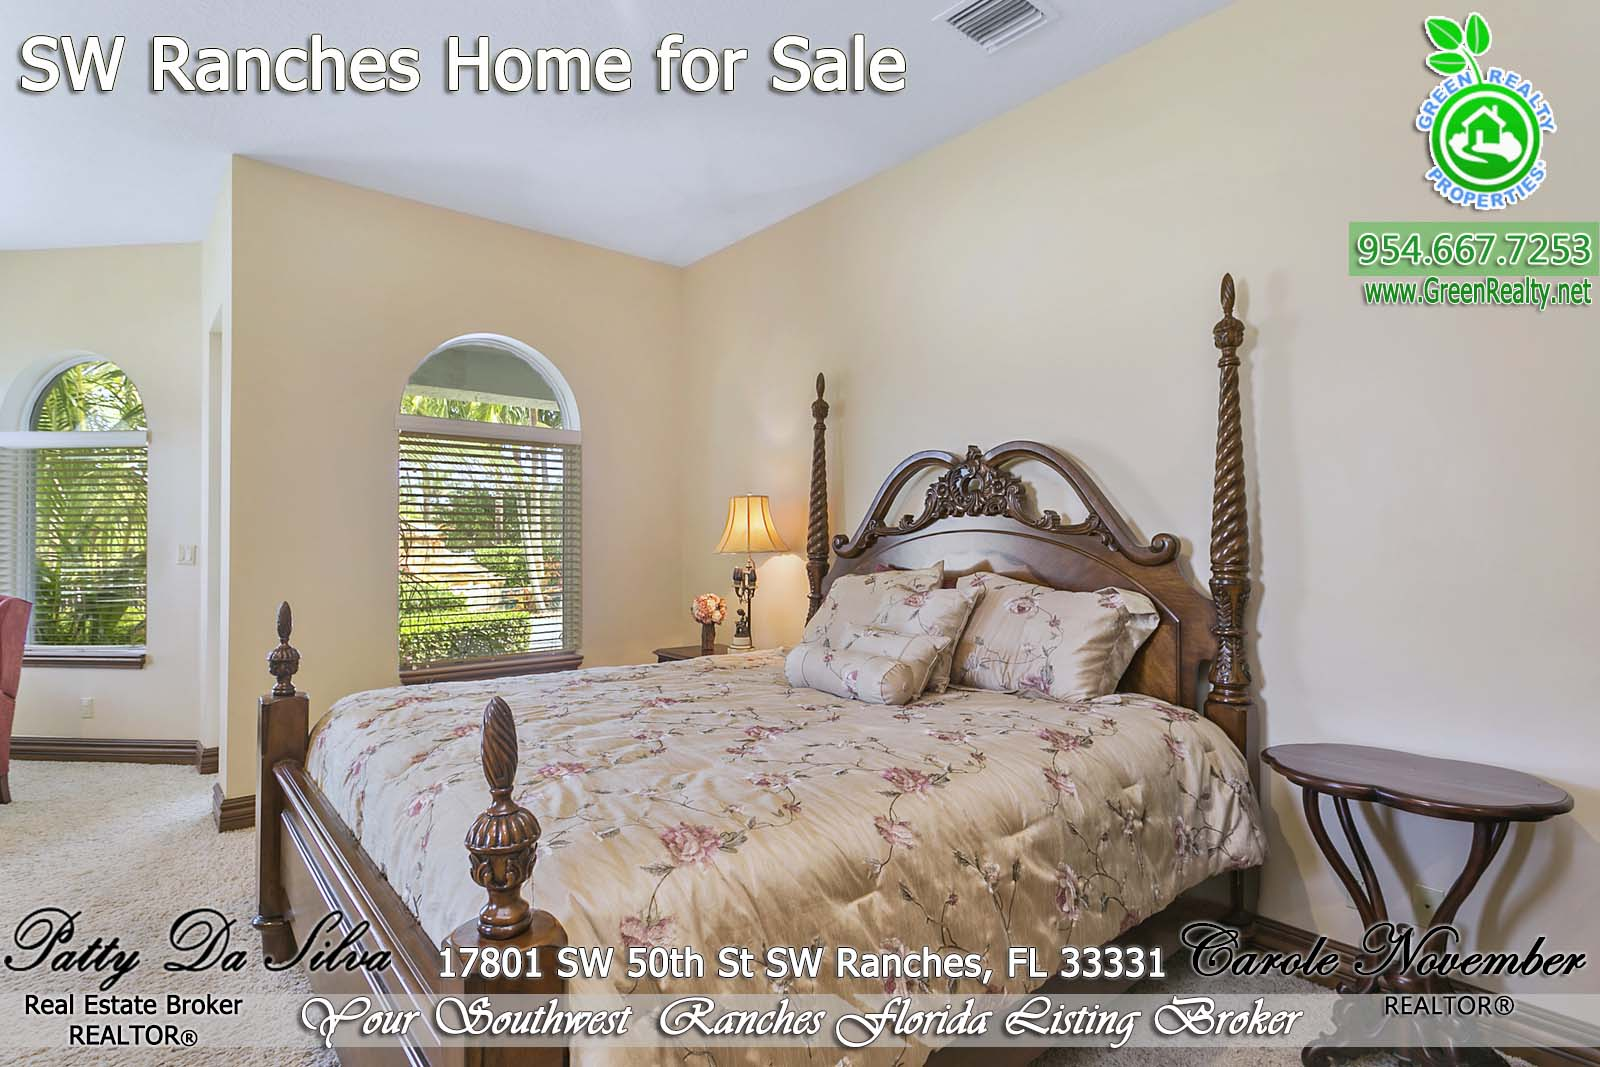 32 Southwest Ranches Equestrian Homes (5)